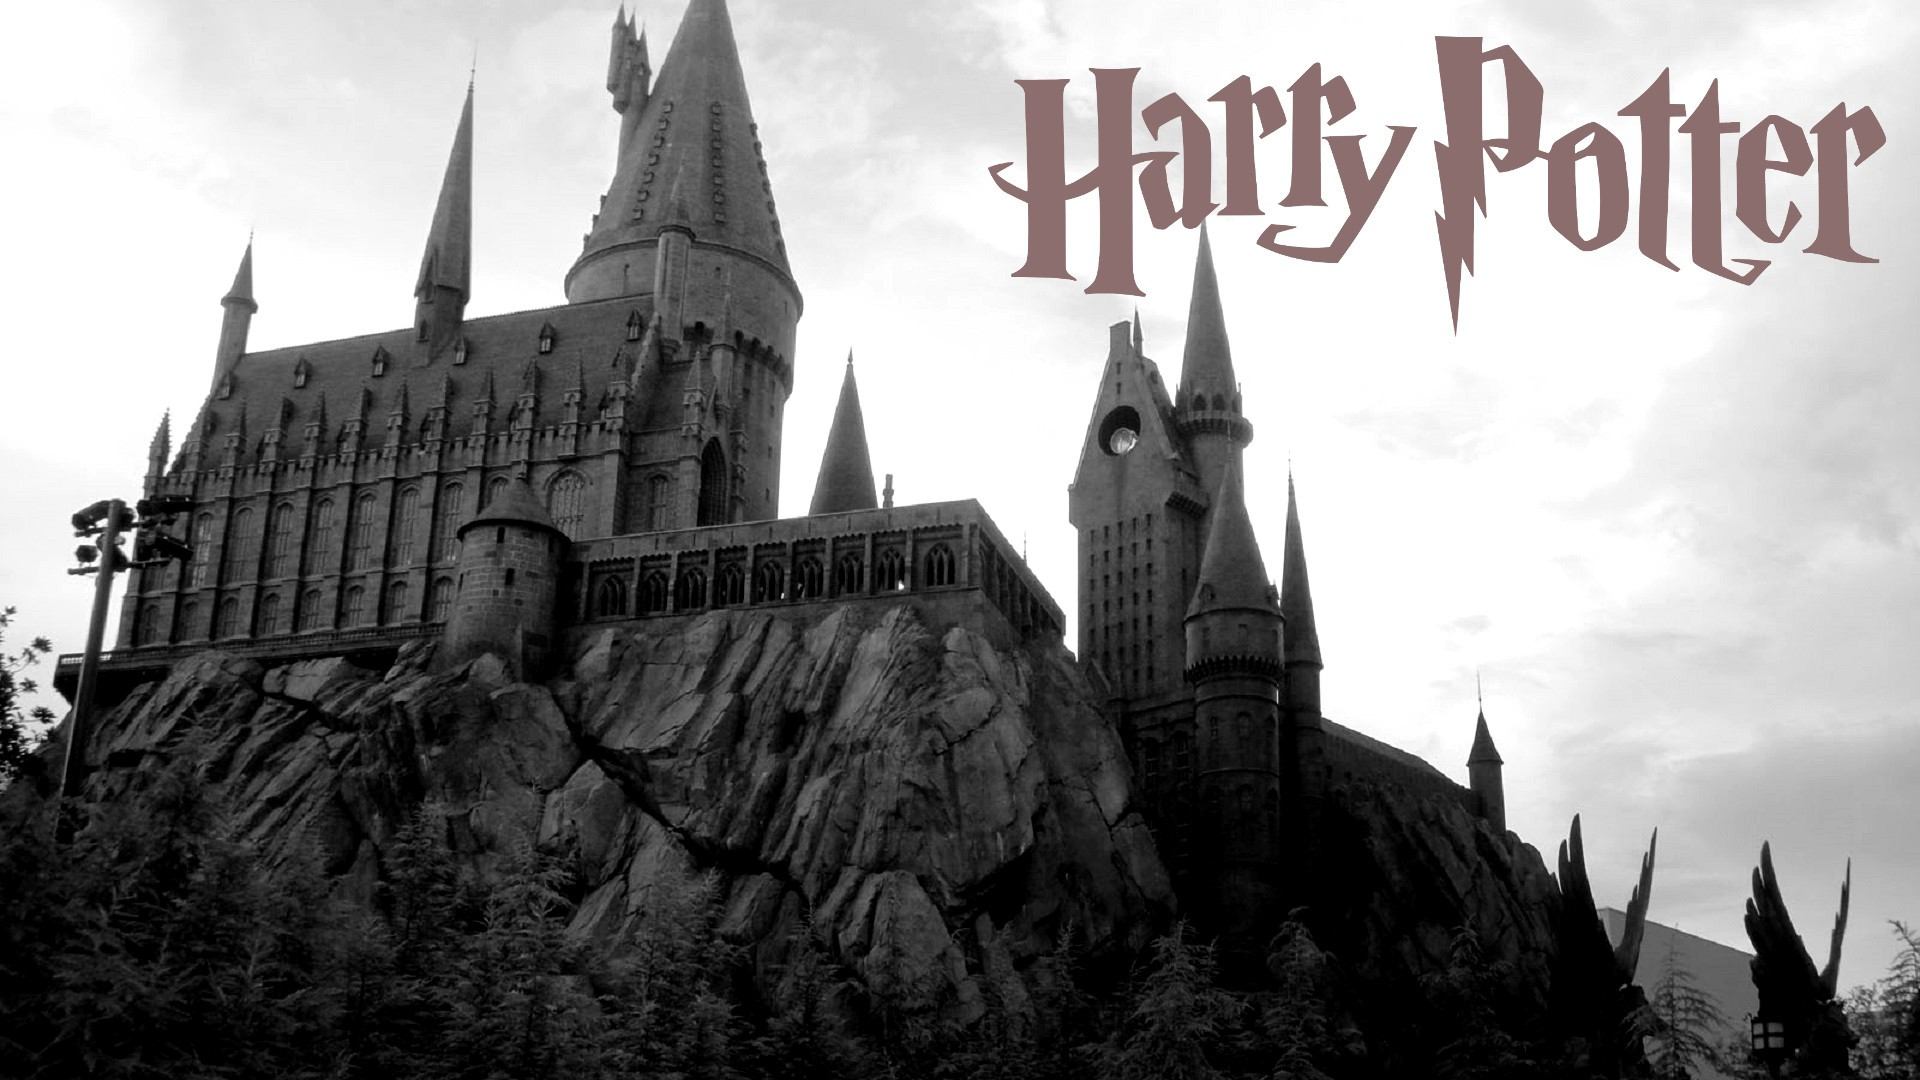 Harry potter background download free amazing - Harry potter images download ...